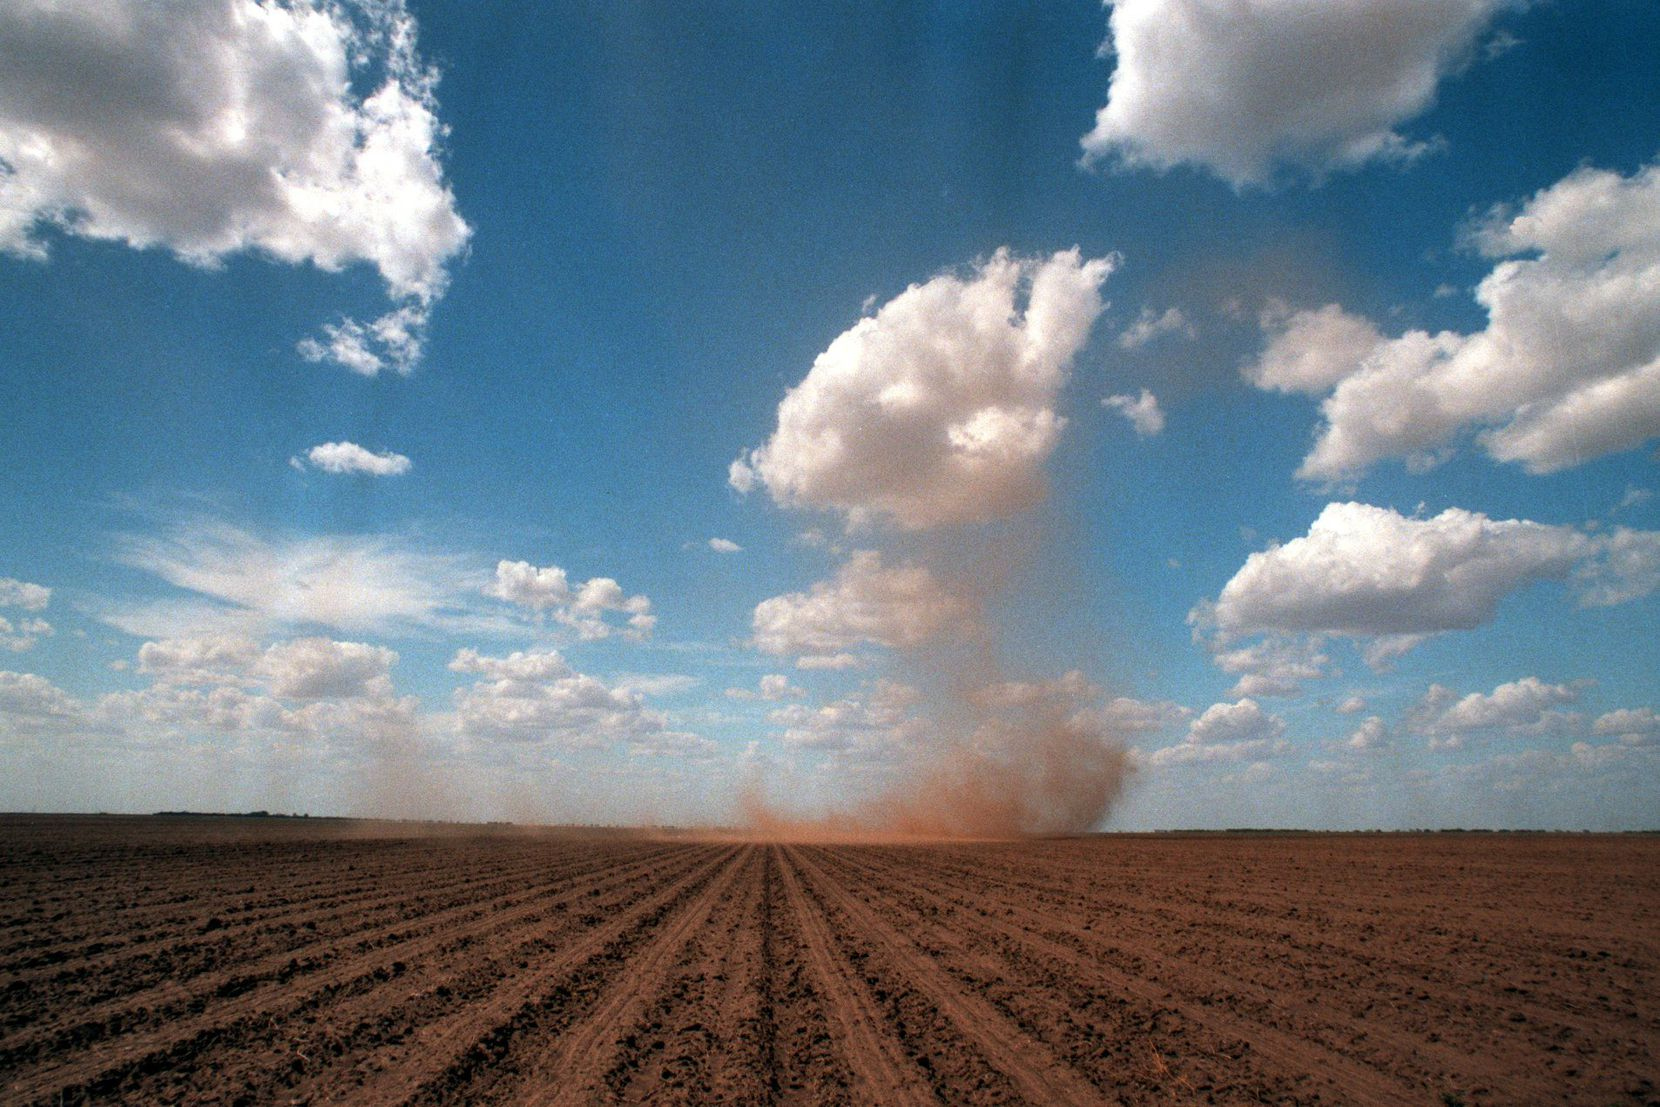 A dust devil rolls across a field near Sweetwater, an area commonly referred to by locals as The Big Country.